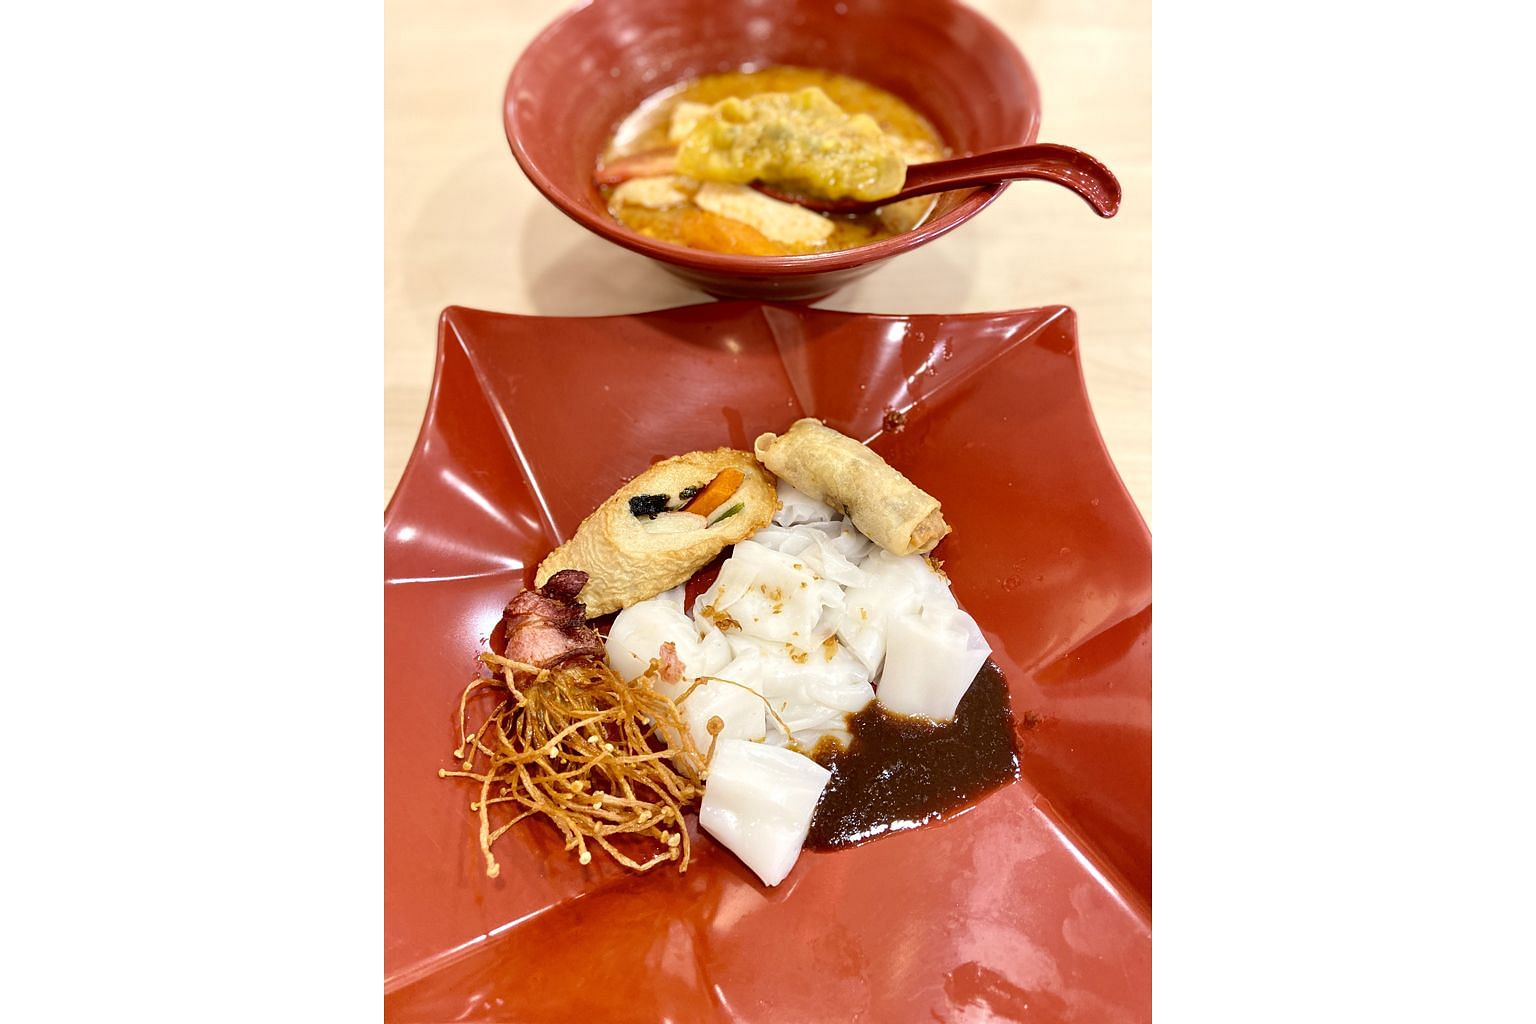 You can pair your yong tau foo at Fong Yong Tau Foo with chee cheong fun.